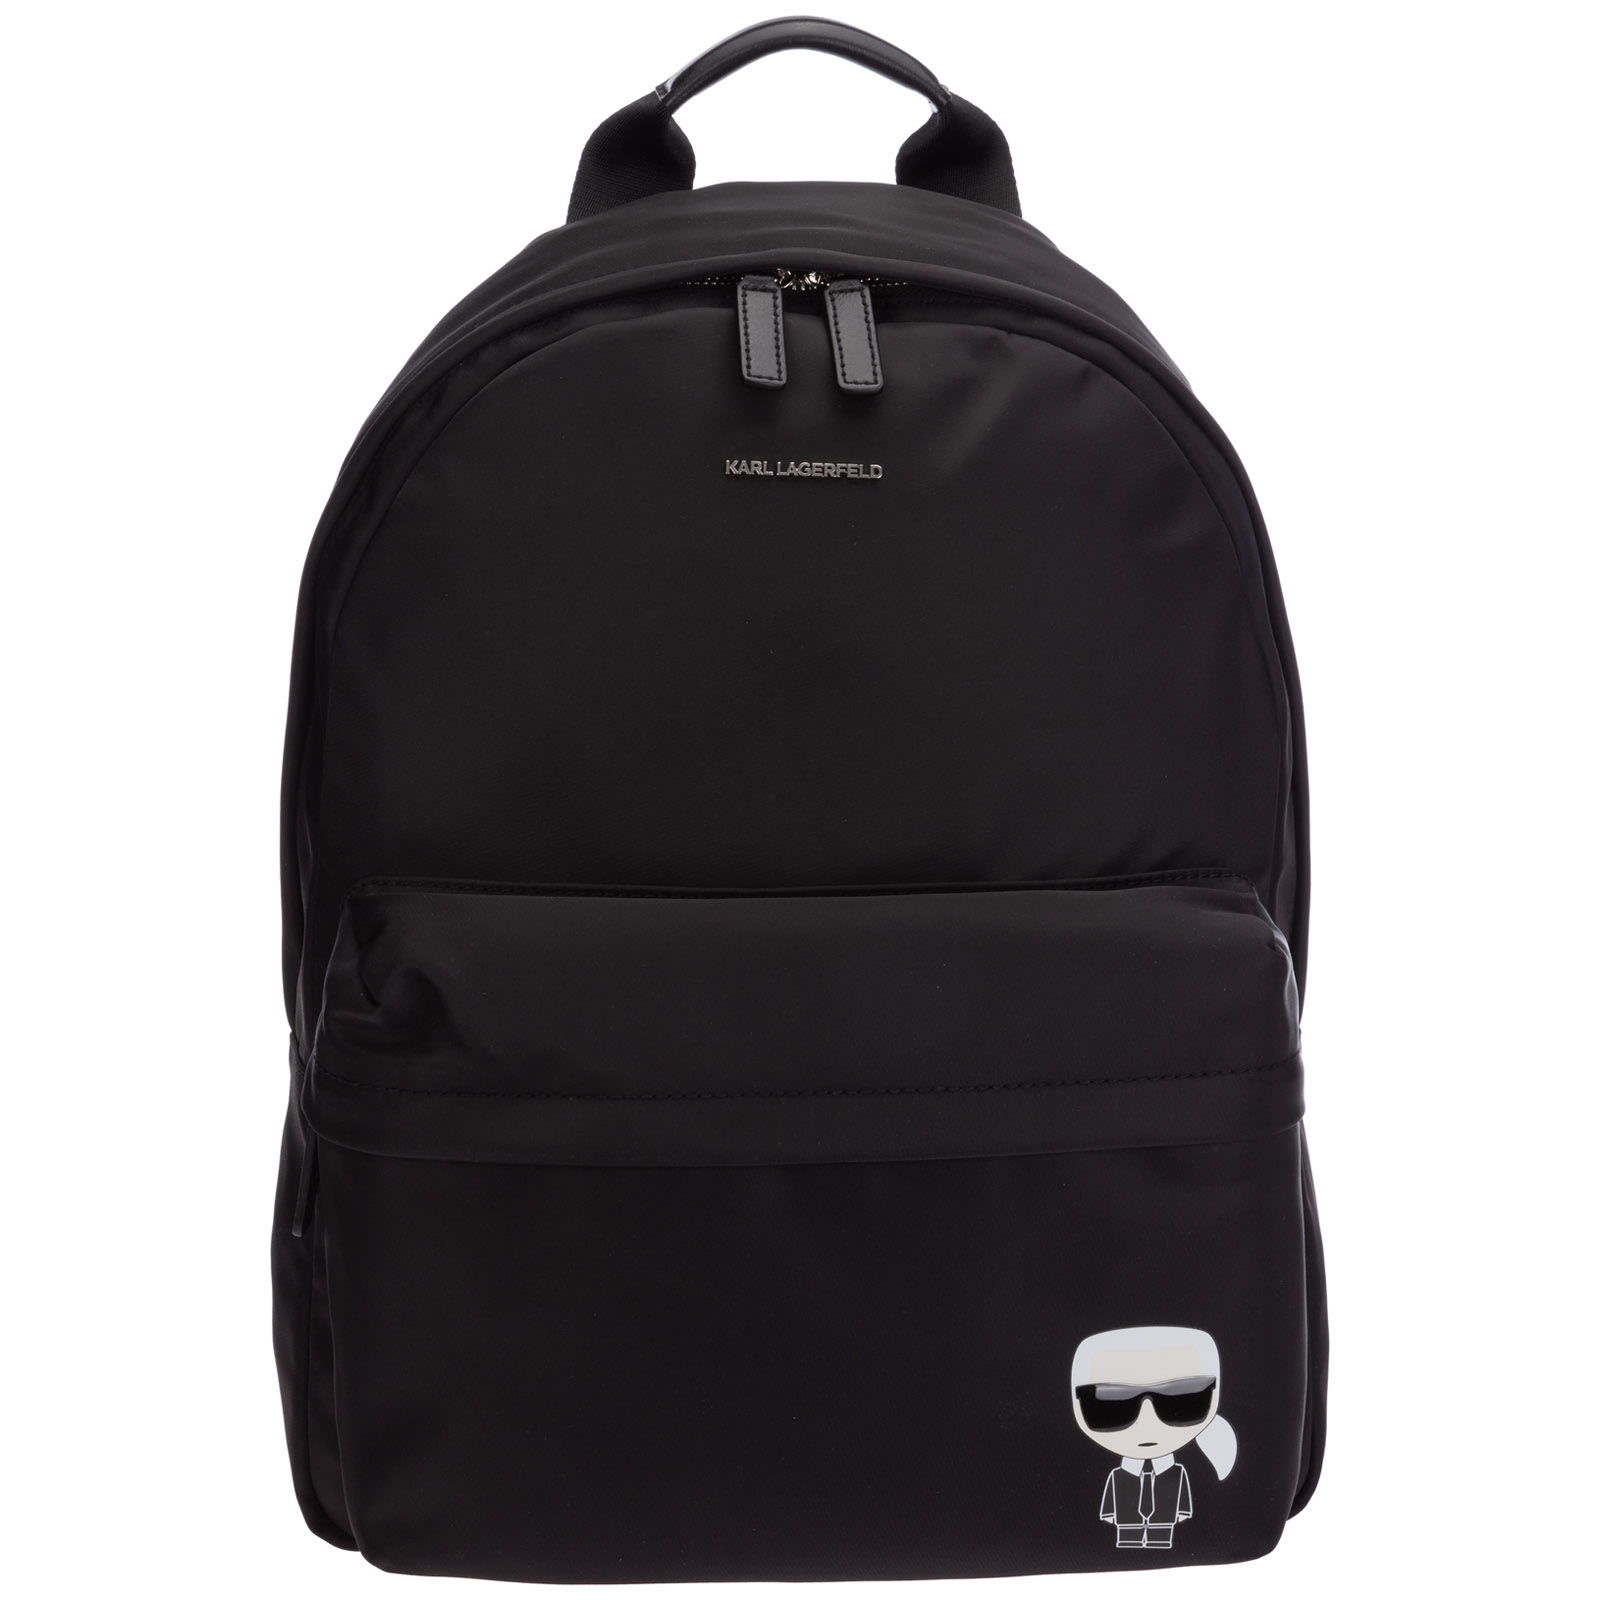 Karl Lagerfeld Backpacks K/IKONIK BACKPACK